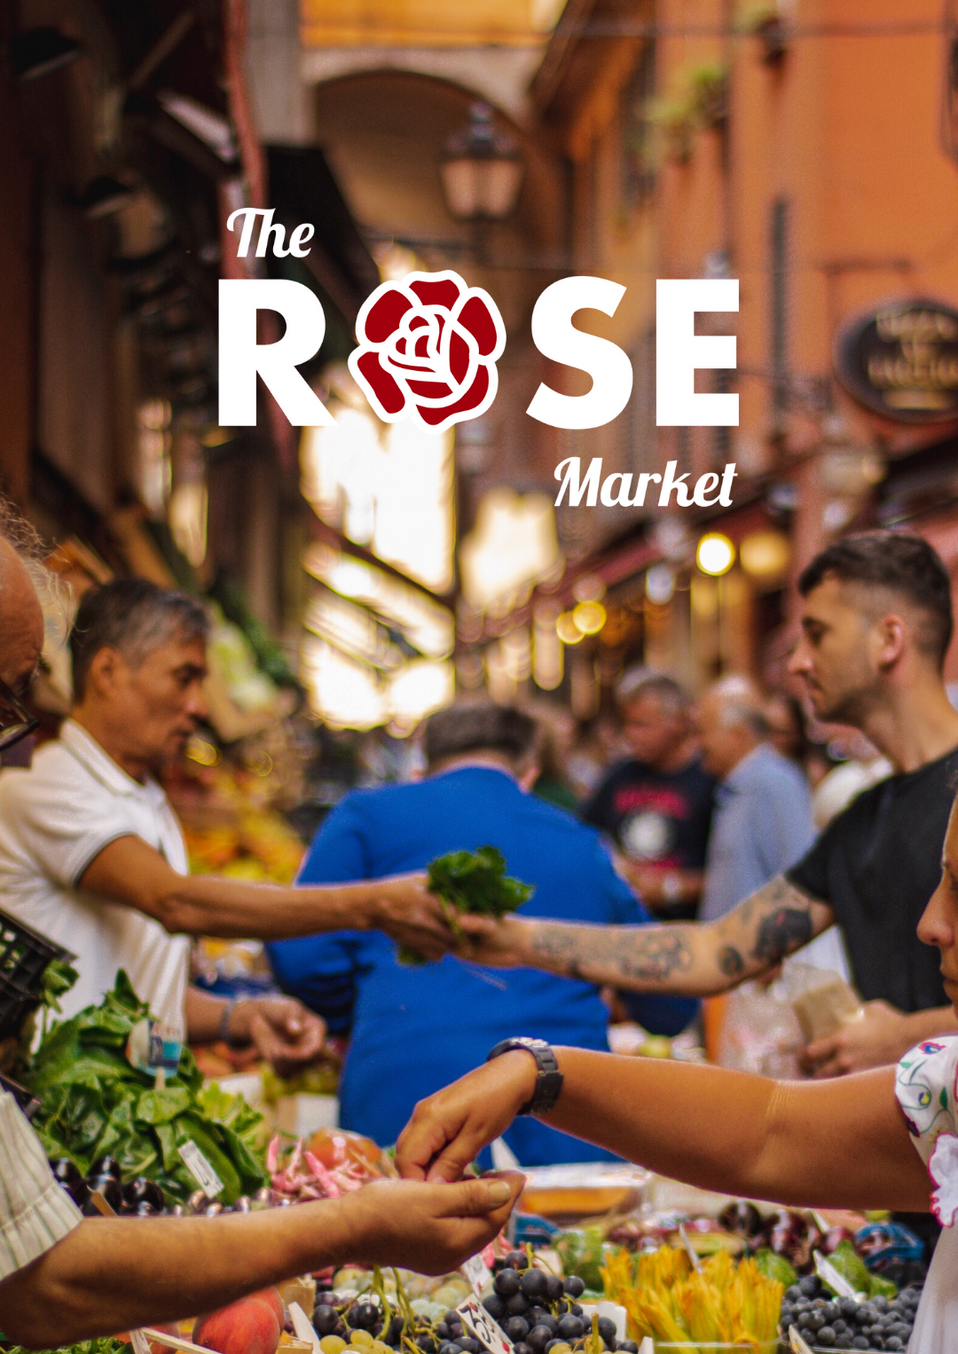 The Rose Market